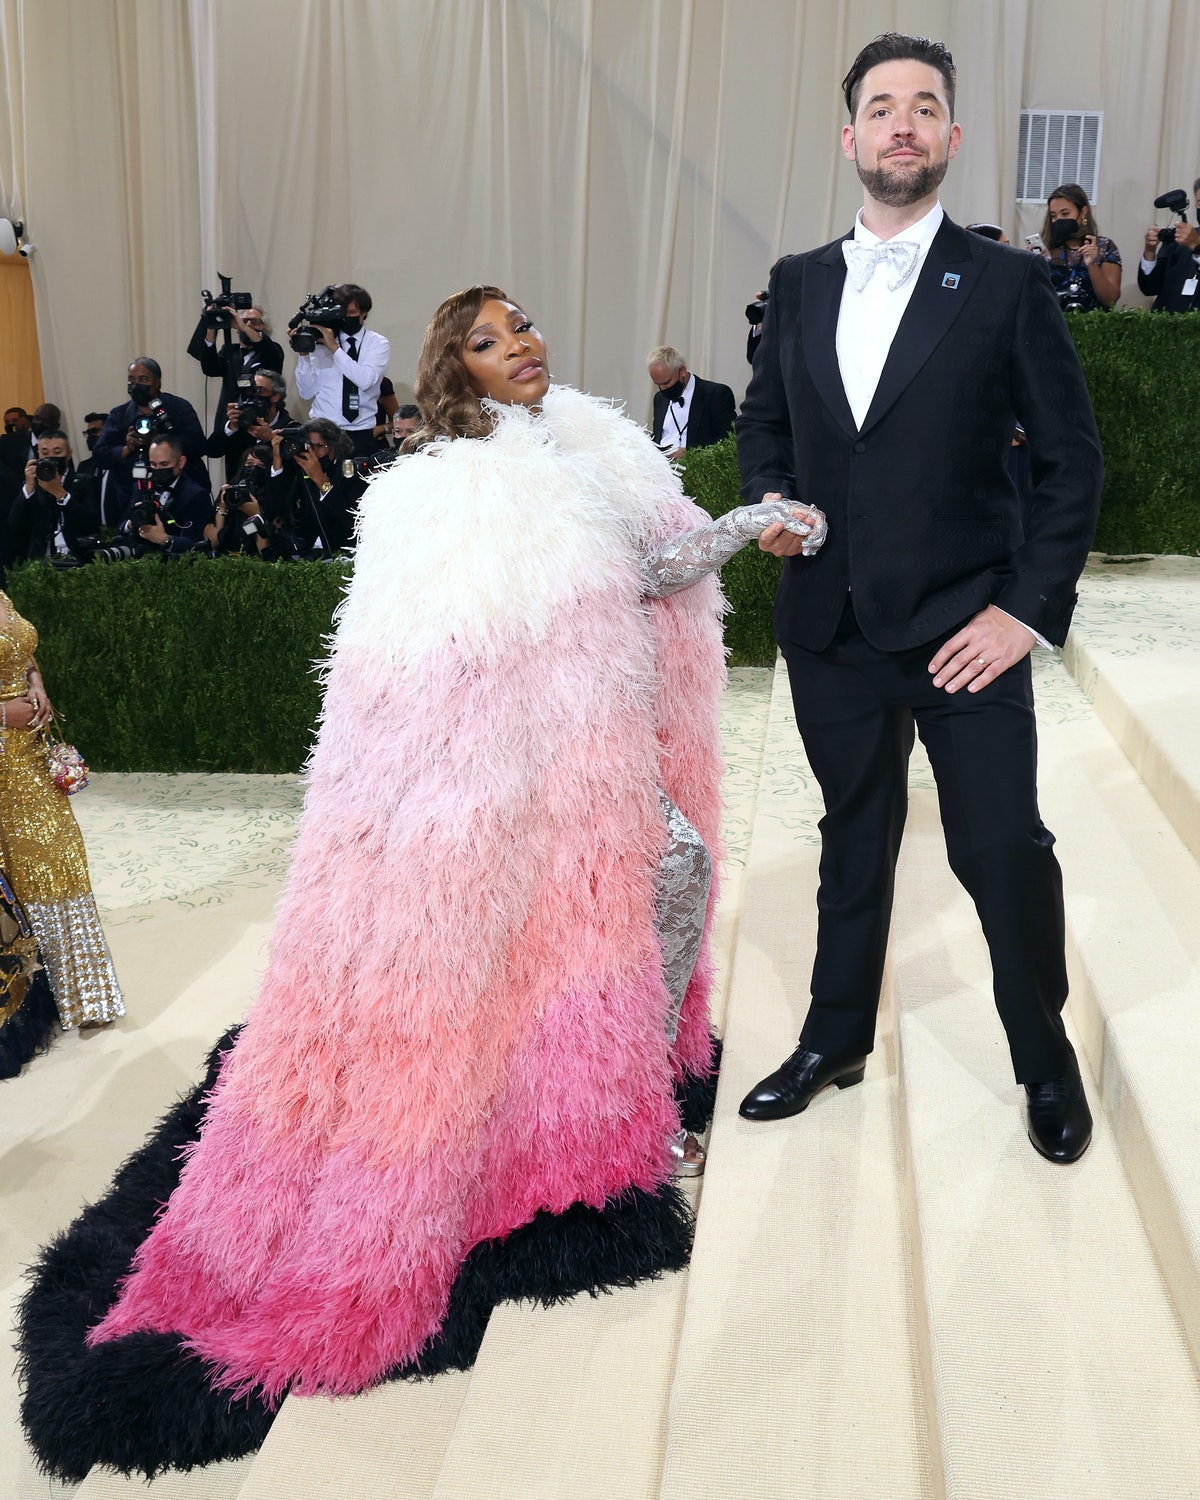 NEW YORK, NEW YORK - SEPTEMBER 13: Serena Williams and Alexis Ohanian attend the 2021 Met Gala benef...